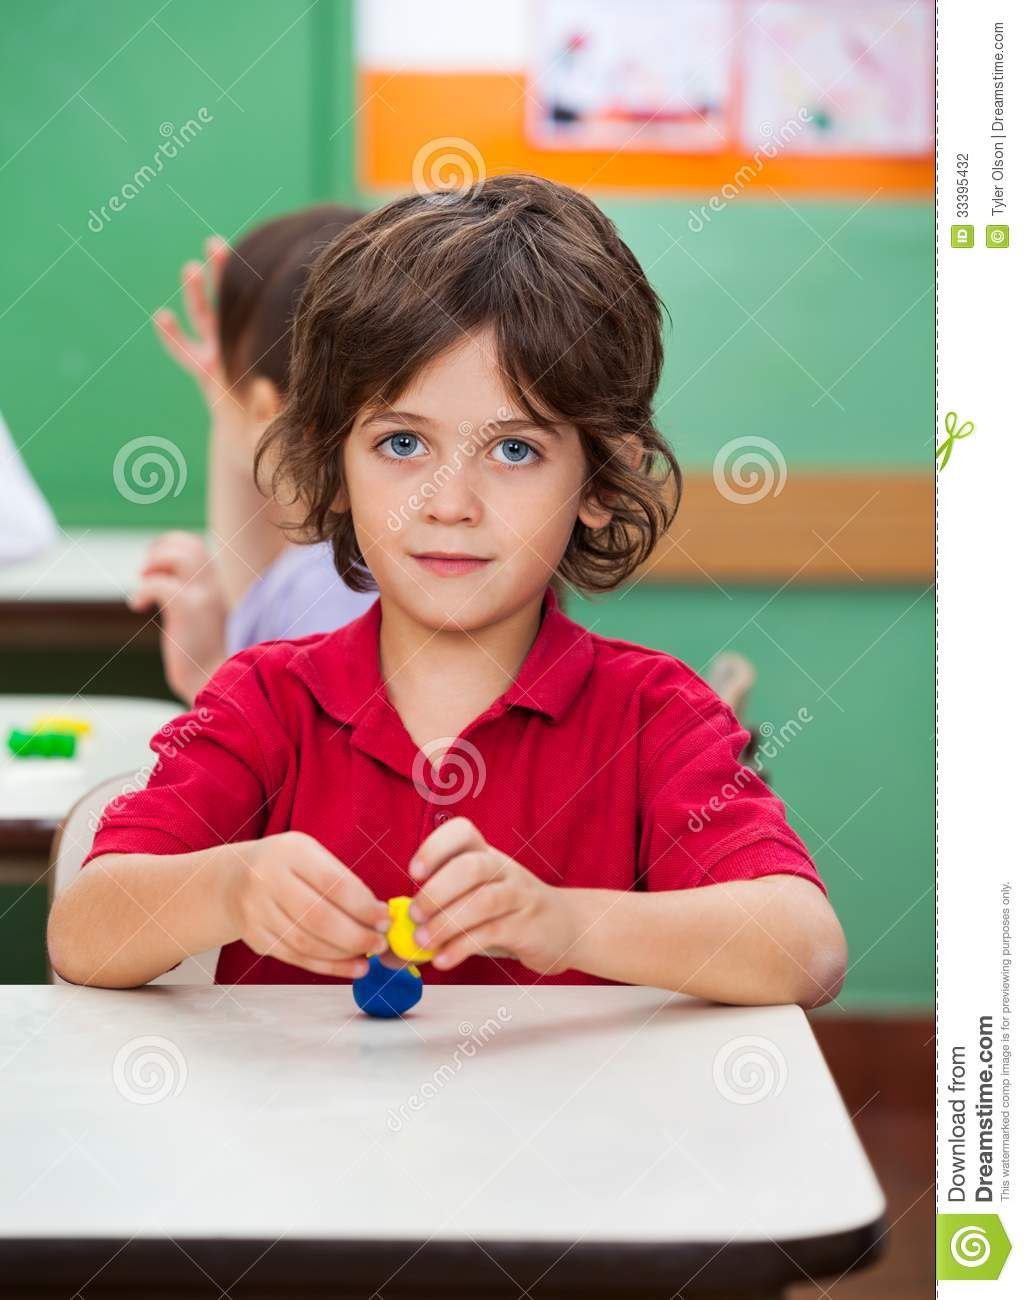 Boy Holding Clay Model At Desk Stock Photography - Image: 33395432model boy